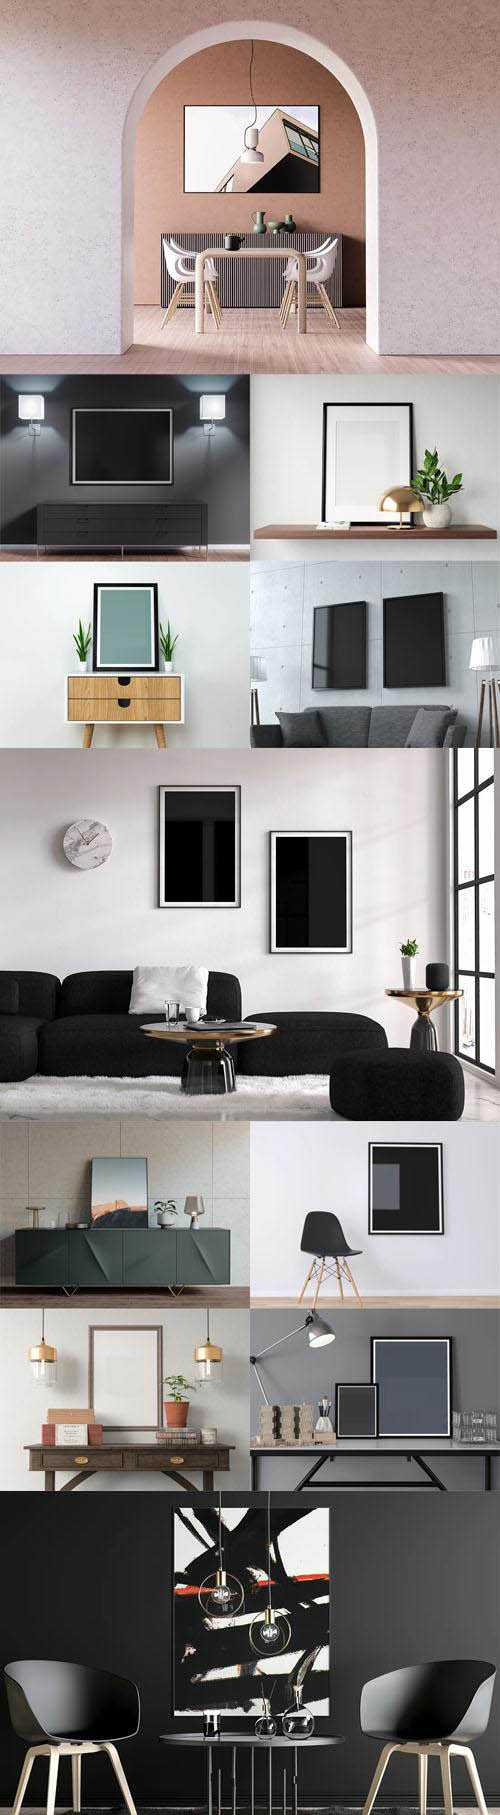 15 Realistic Poster PSD Mockups Collection – Made with Cinema 4D !